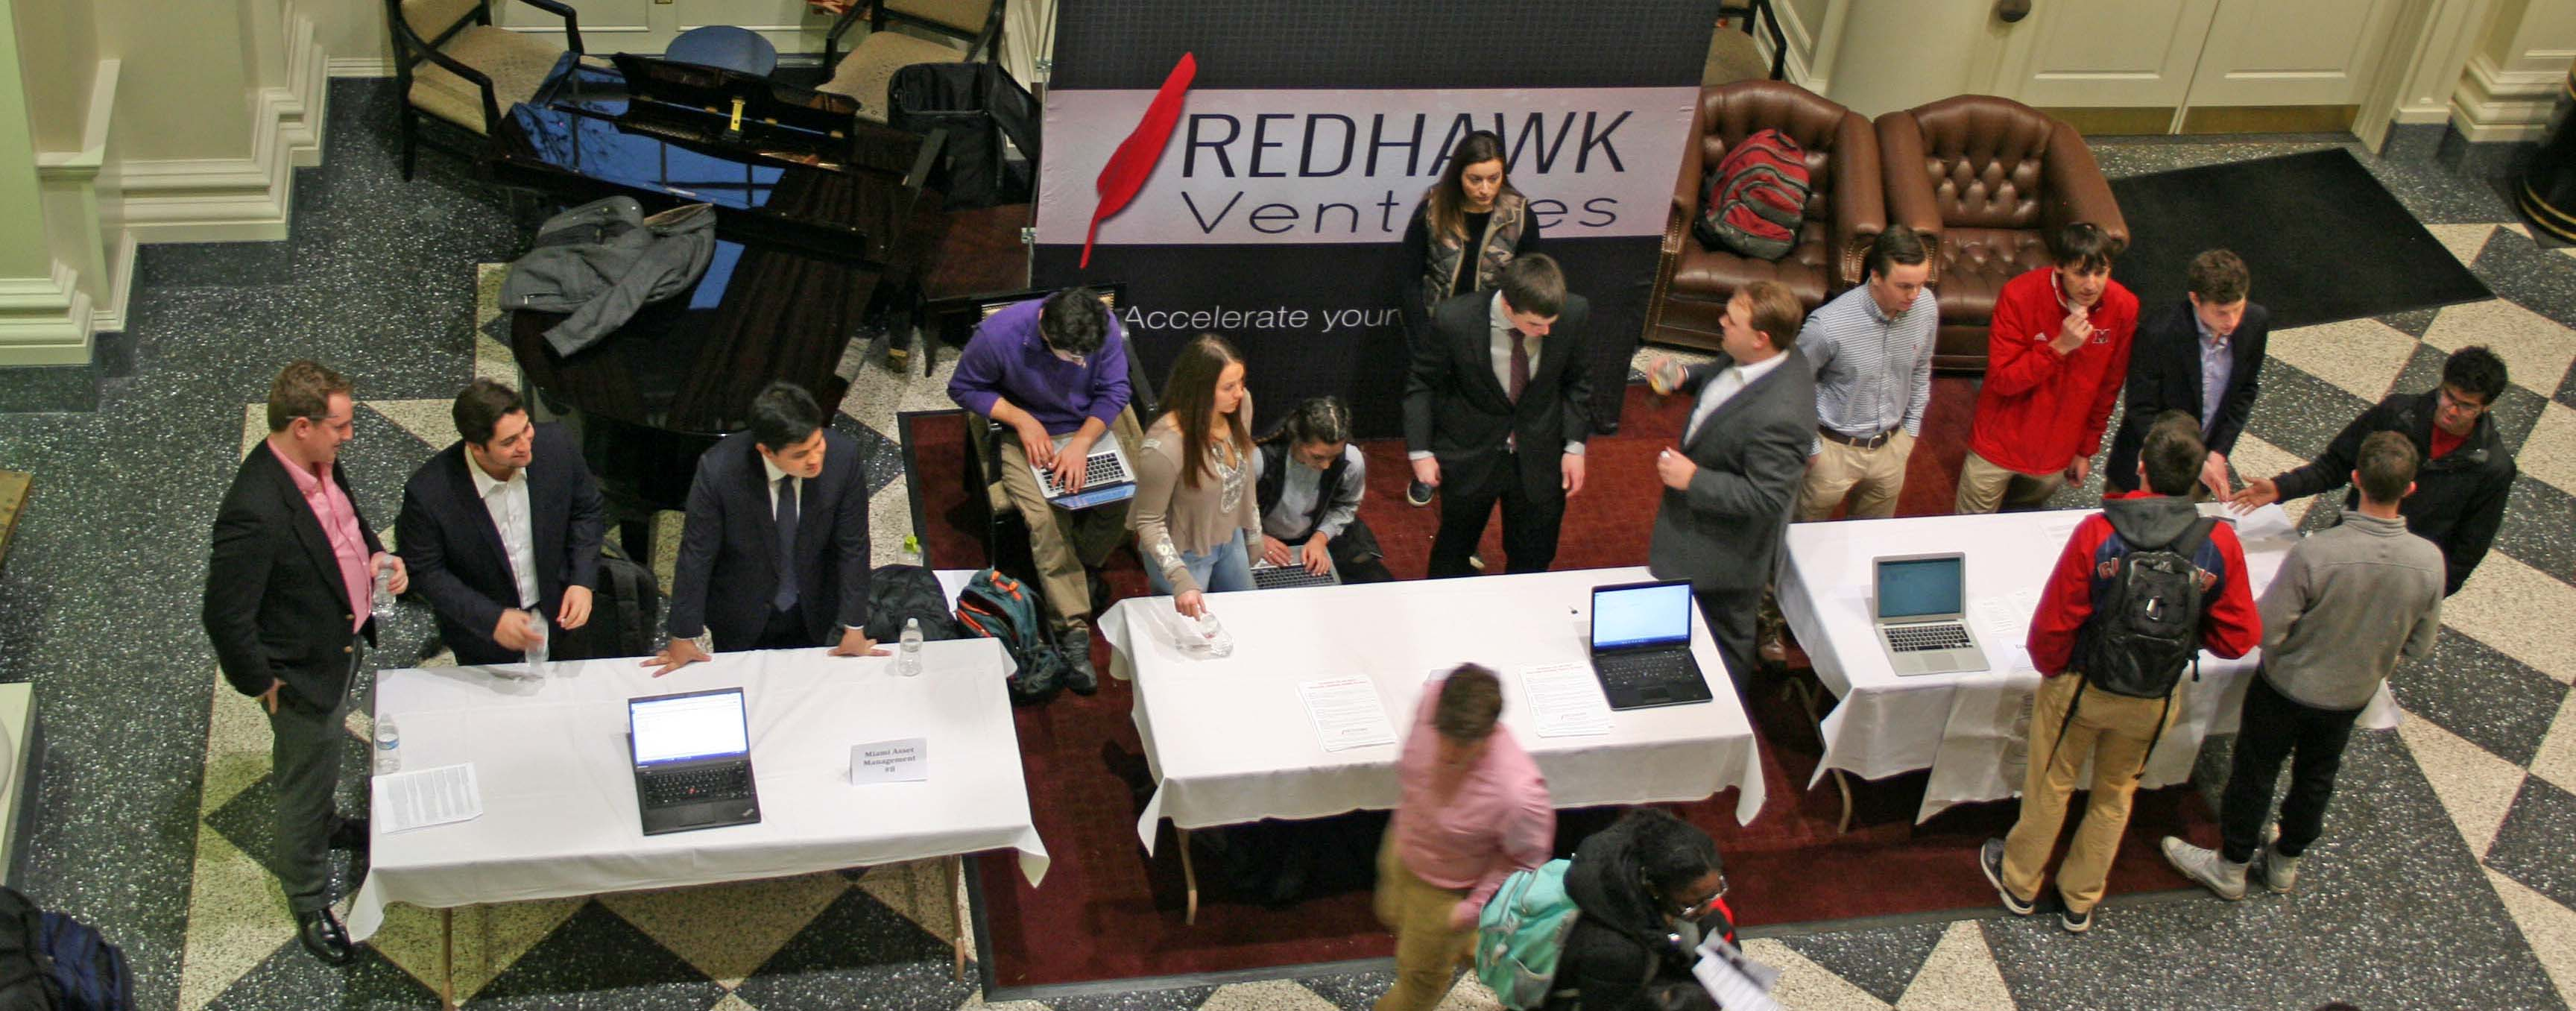 Redhawk Ventures table at Meet the B-Orgs